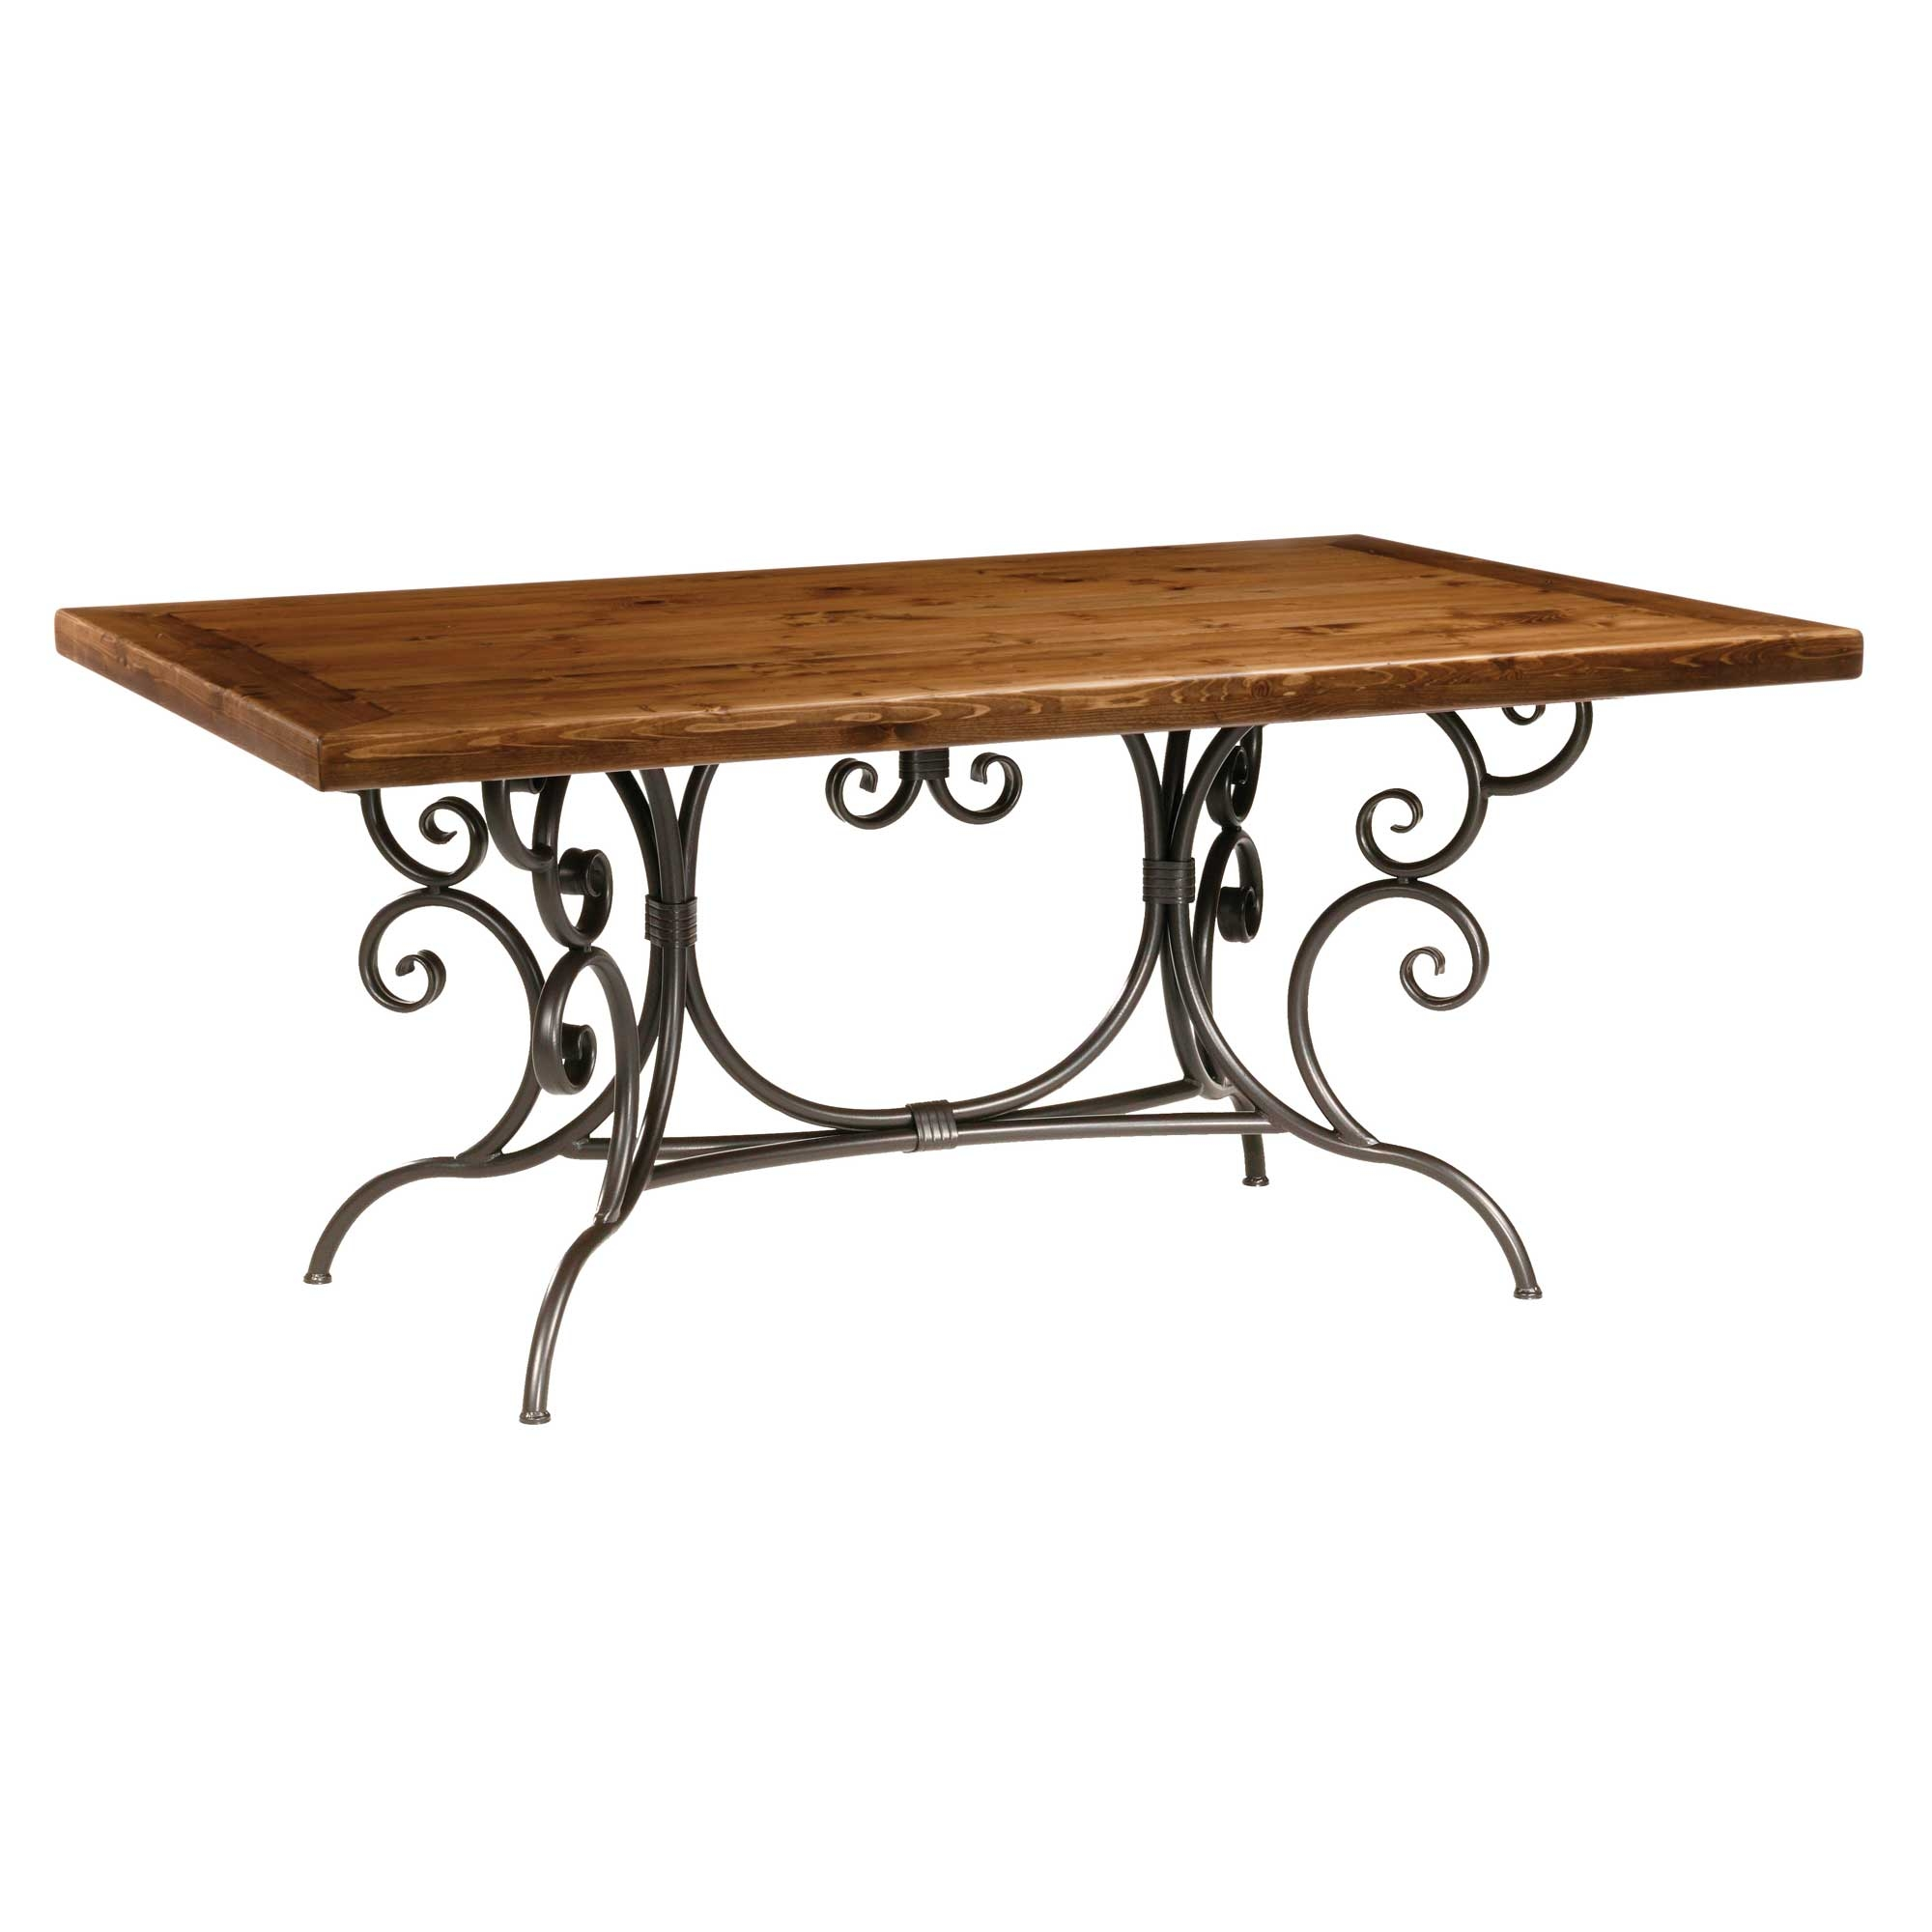 Wrought iron waterbury dining table by stone county ironworks for Ornamental centrepiece for a dining table